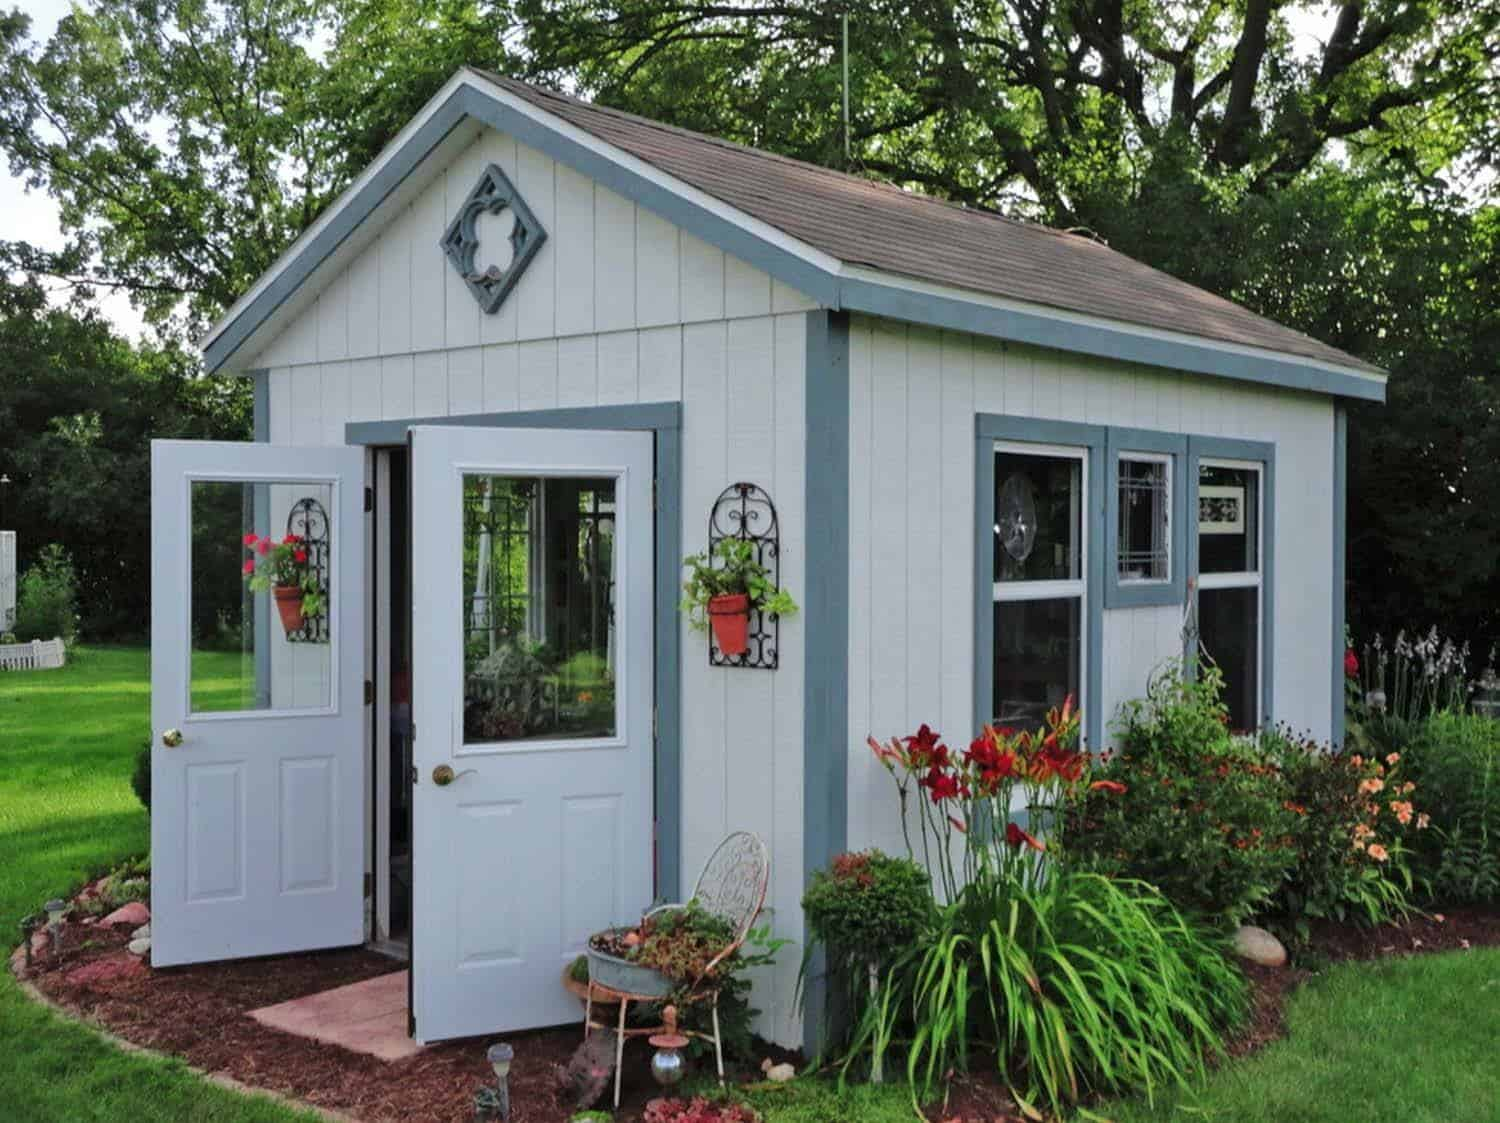 Garden Shed Ideas-18-1 Kindesign